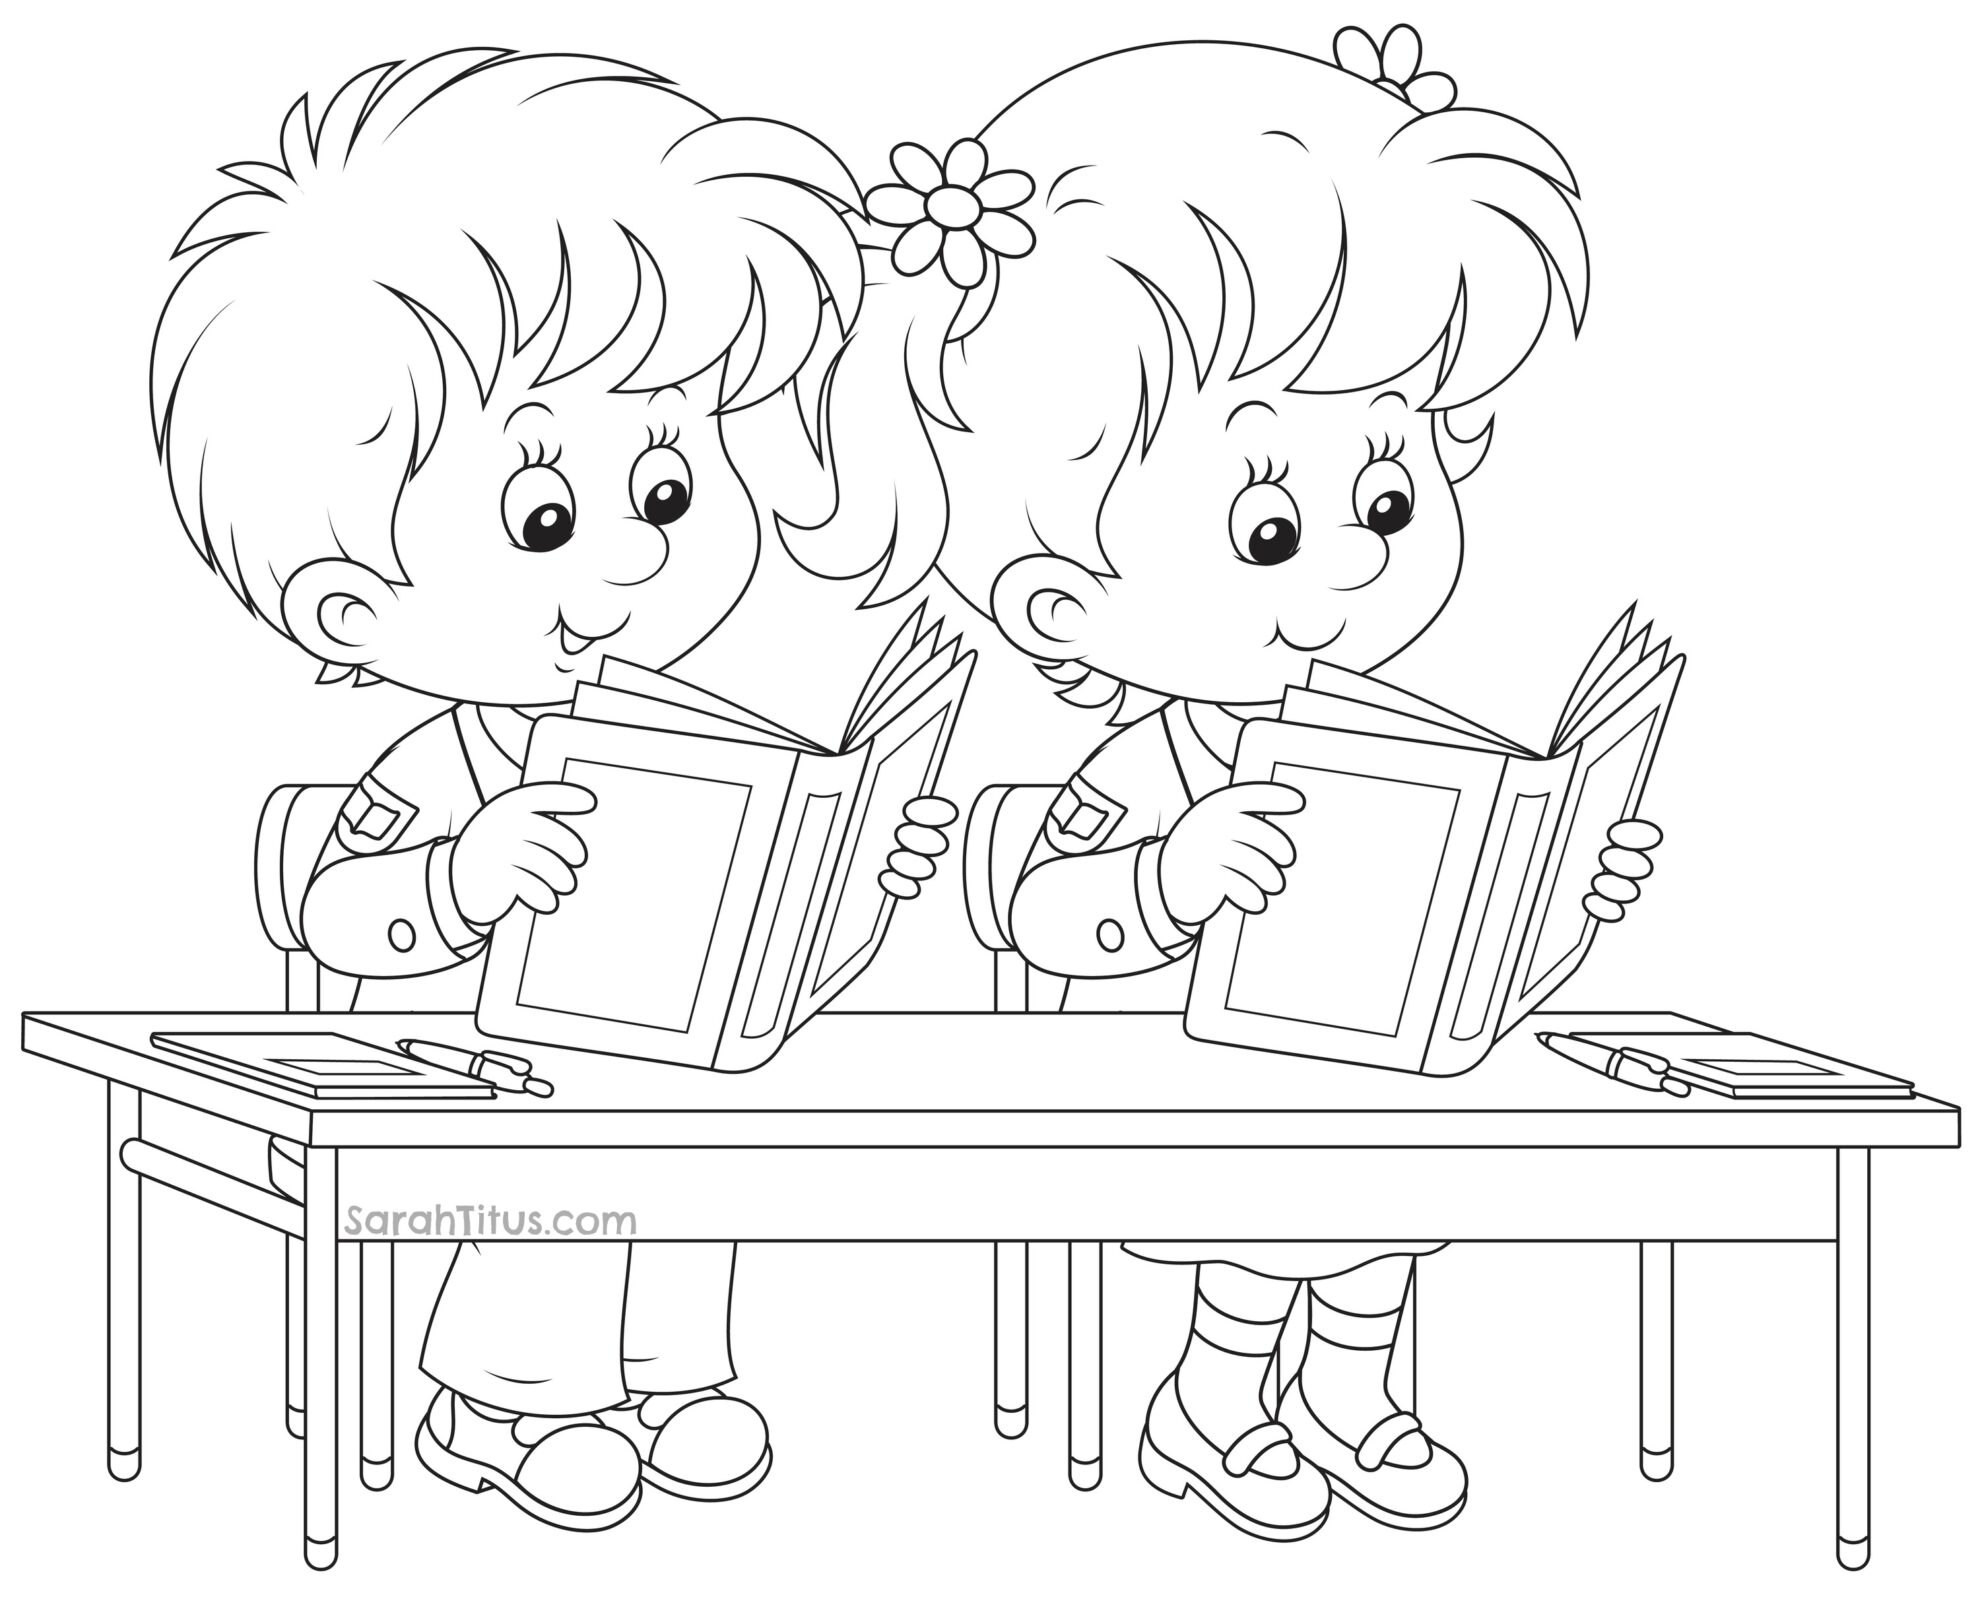 kindergarten school coloring pages - Coloring Page For Kindergarten